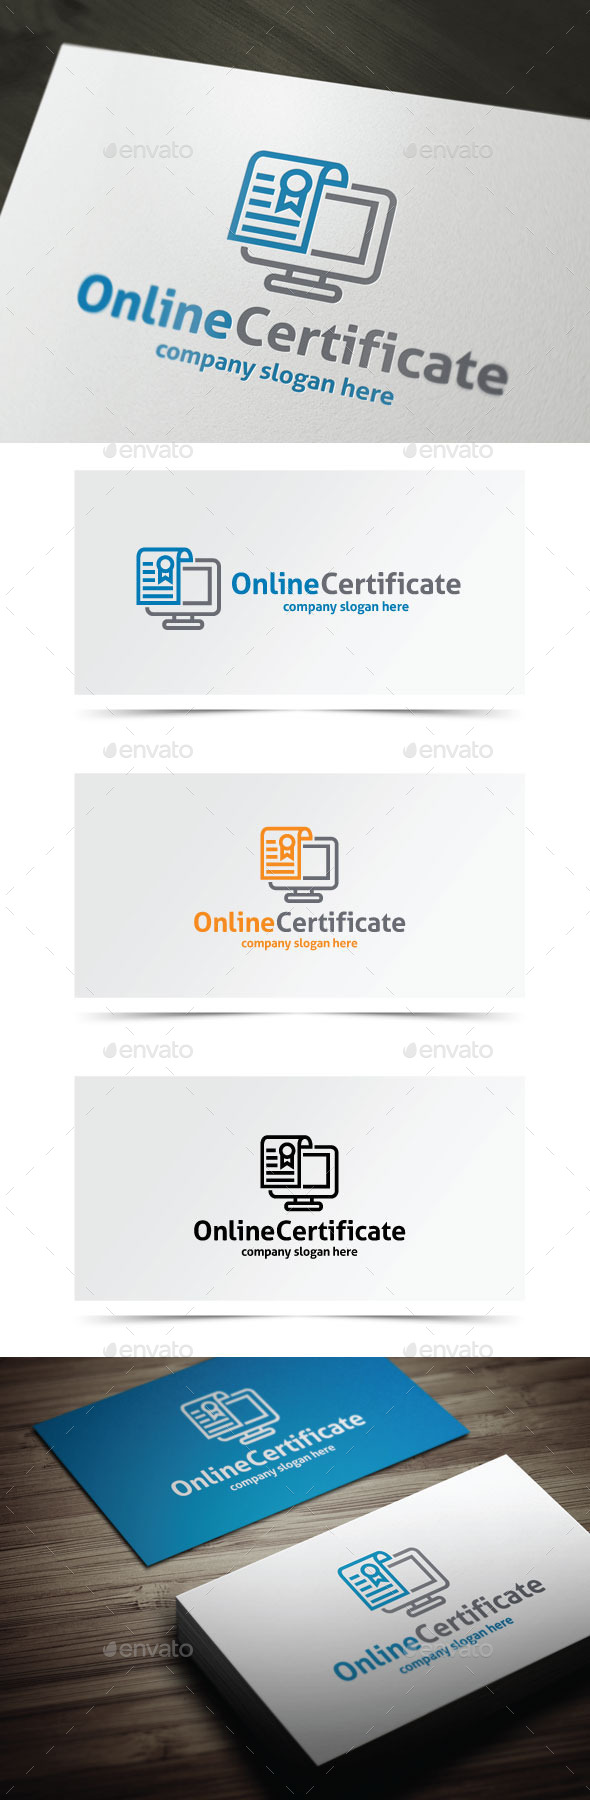 GraphicRiver Online Certificate 10131526